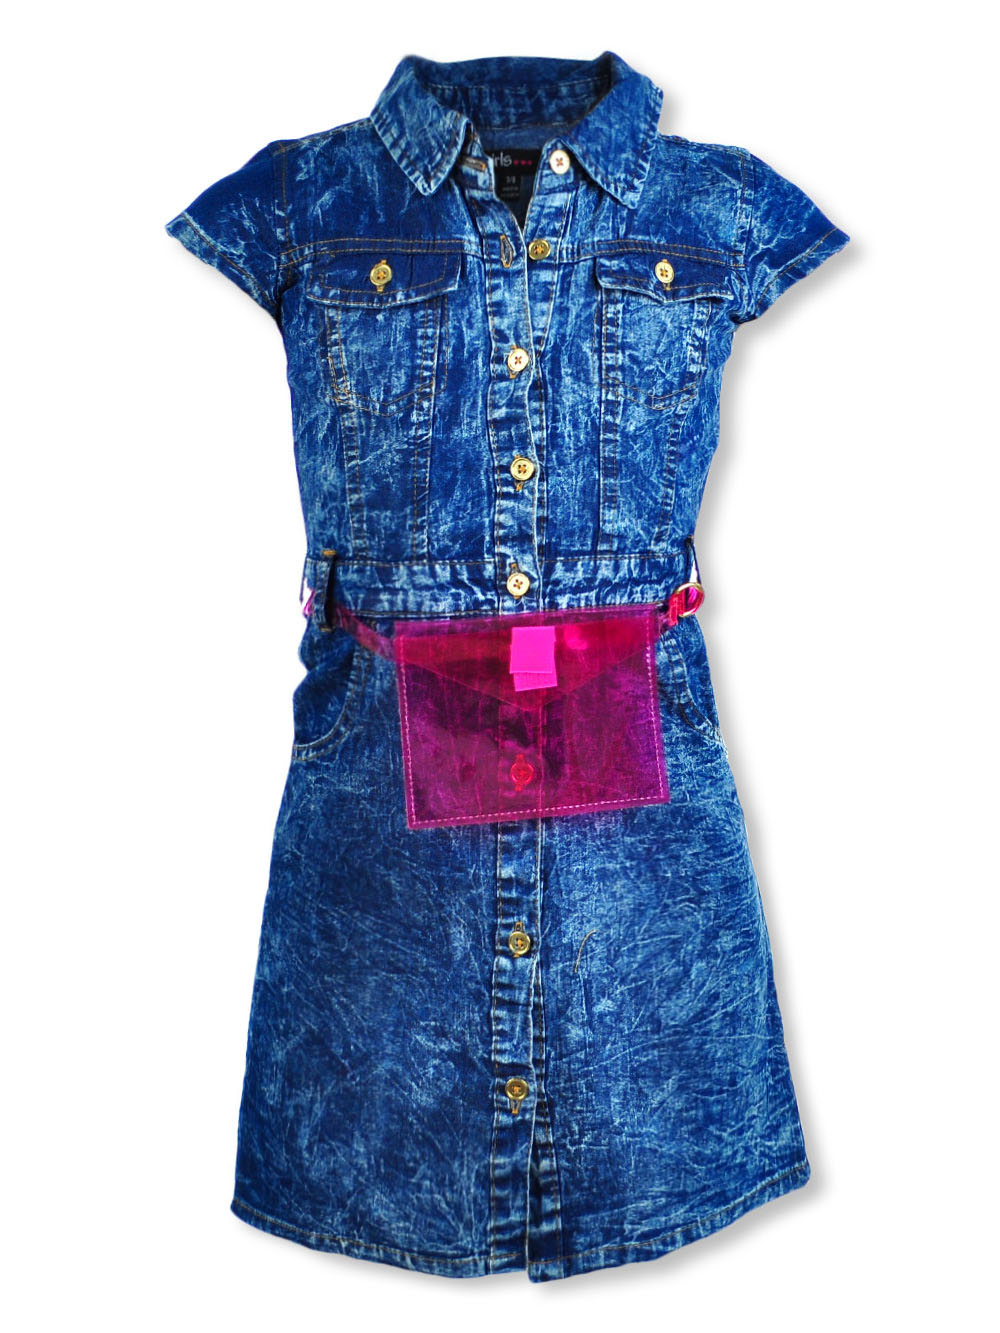 Size 14 Casual Dresses for Girls